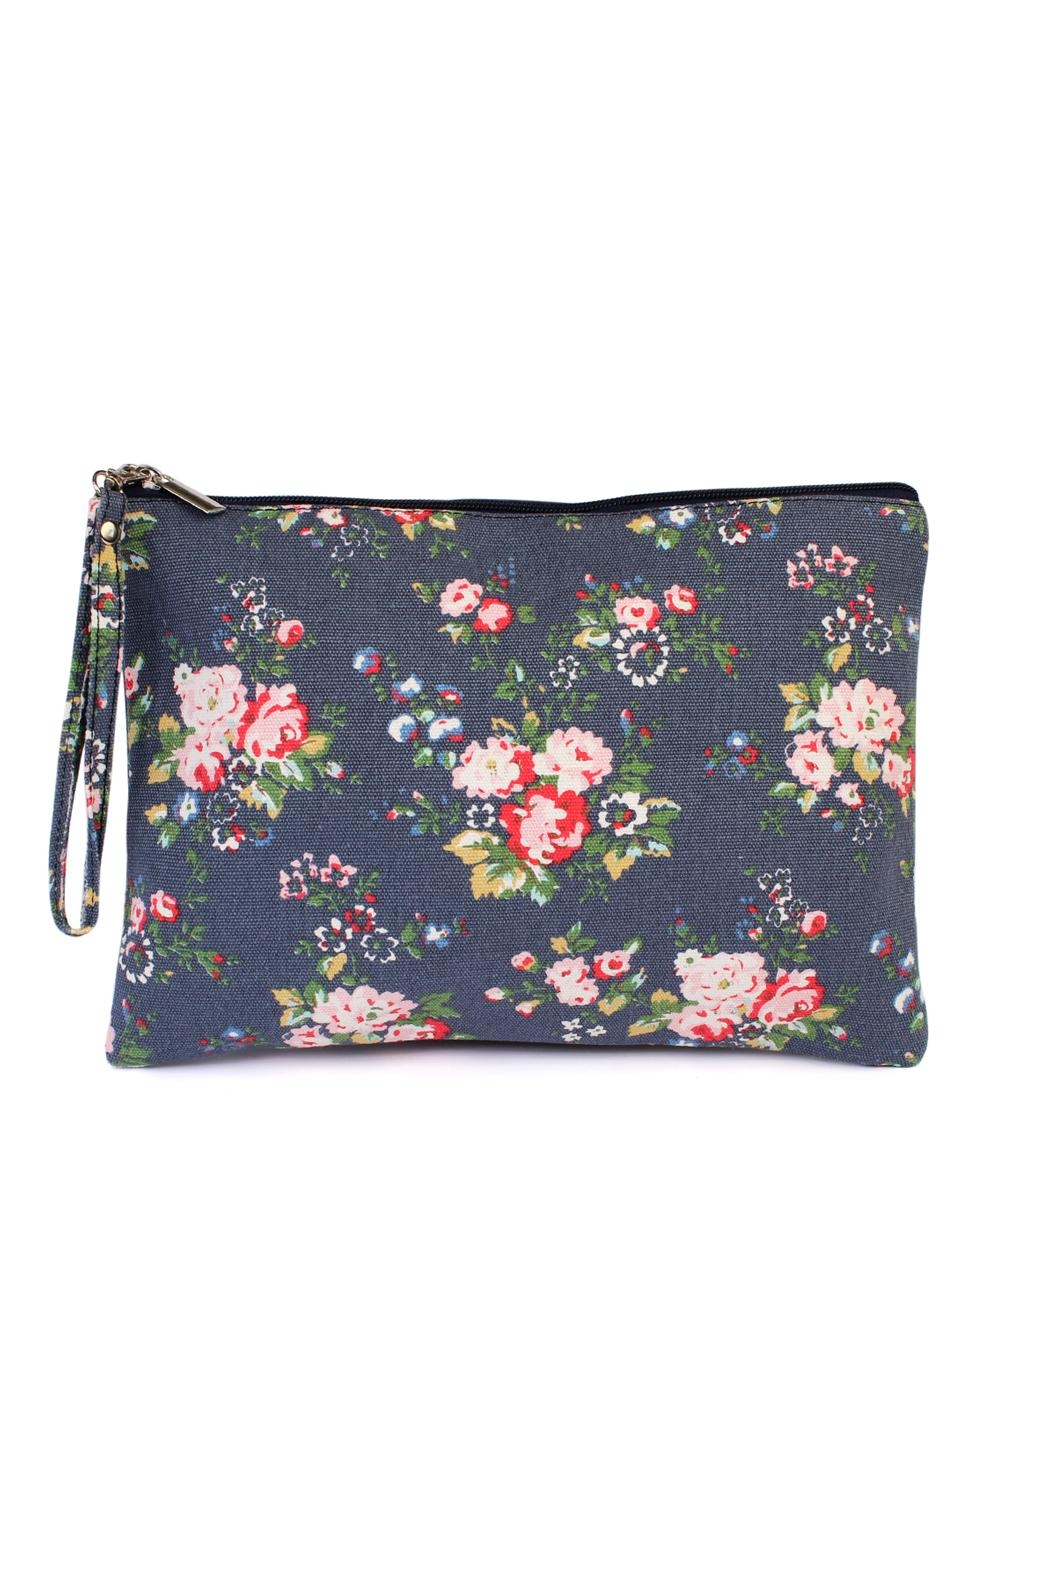 Riah Fashion Floral-Print Wristlet Cosmetic-Bag - Front Cropped Image